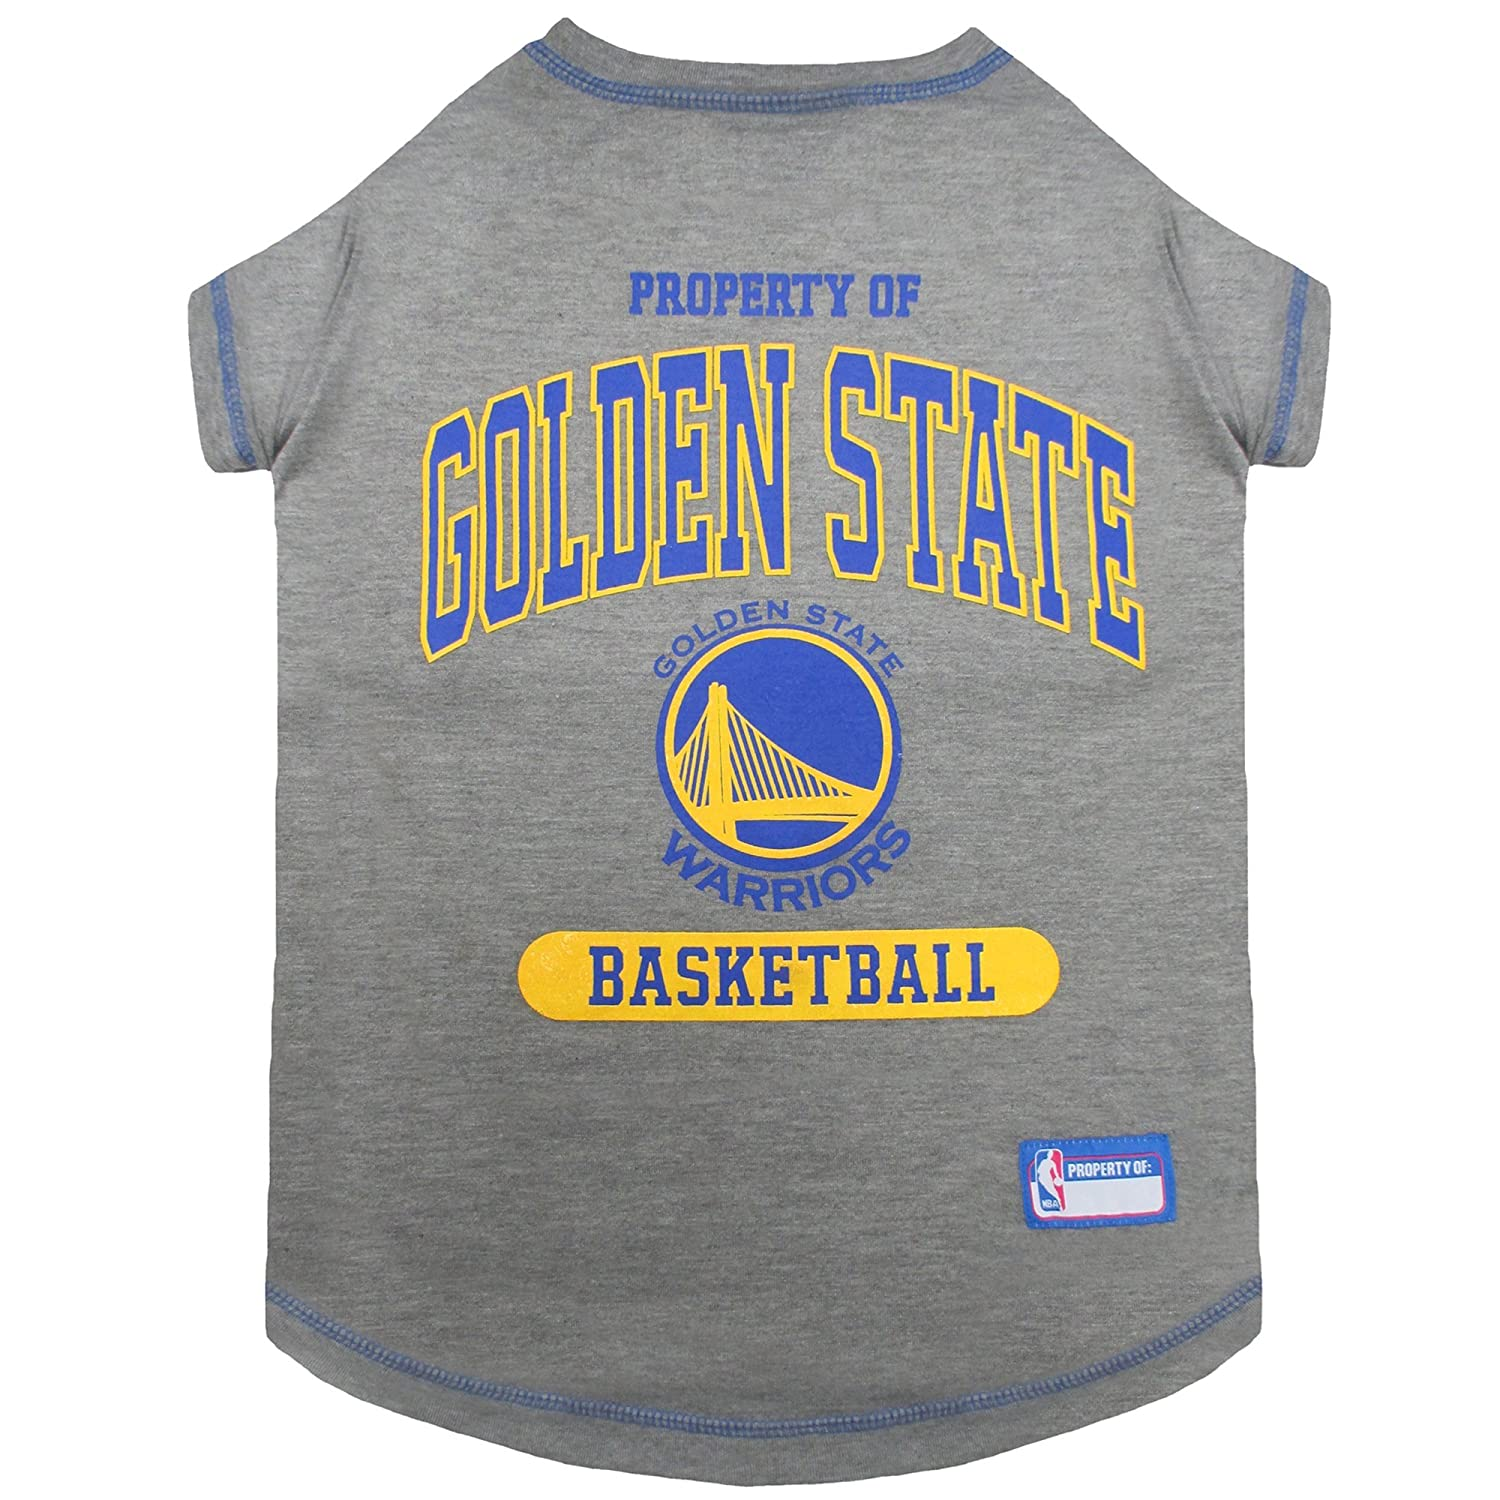 NBA PET APPAREL. - Licensed HOODIES & T-SHIRTS for DOGS & CATS available in 25 BASKETBALL TEAMS & 5 sizes. TOP QUALITY Cute pet clothing for all ...